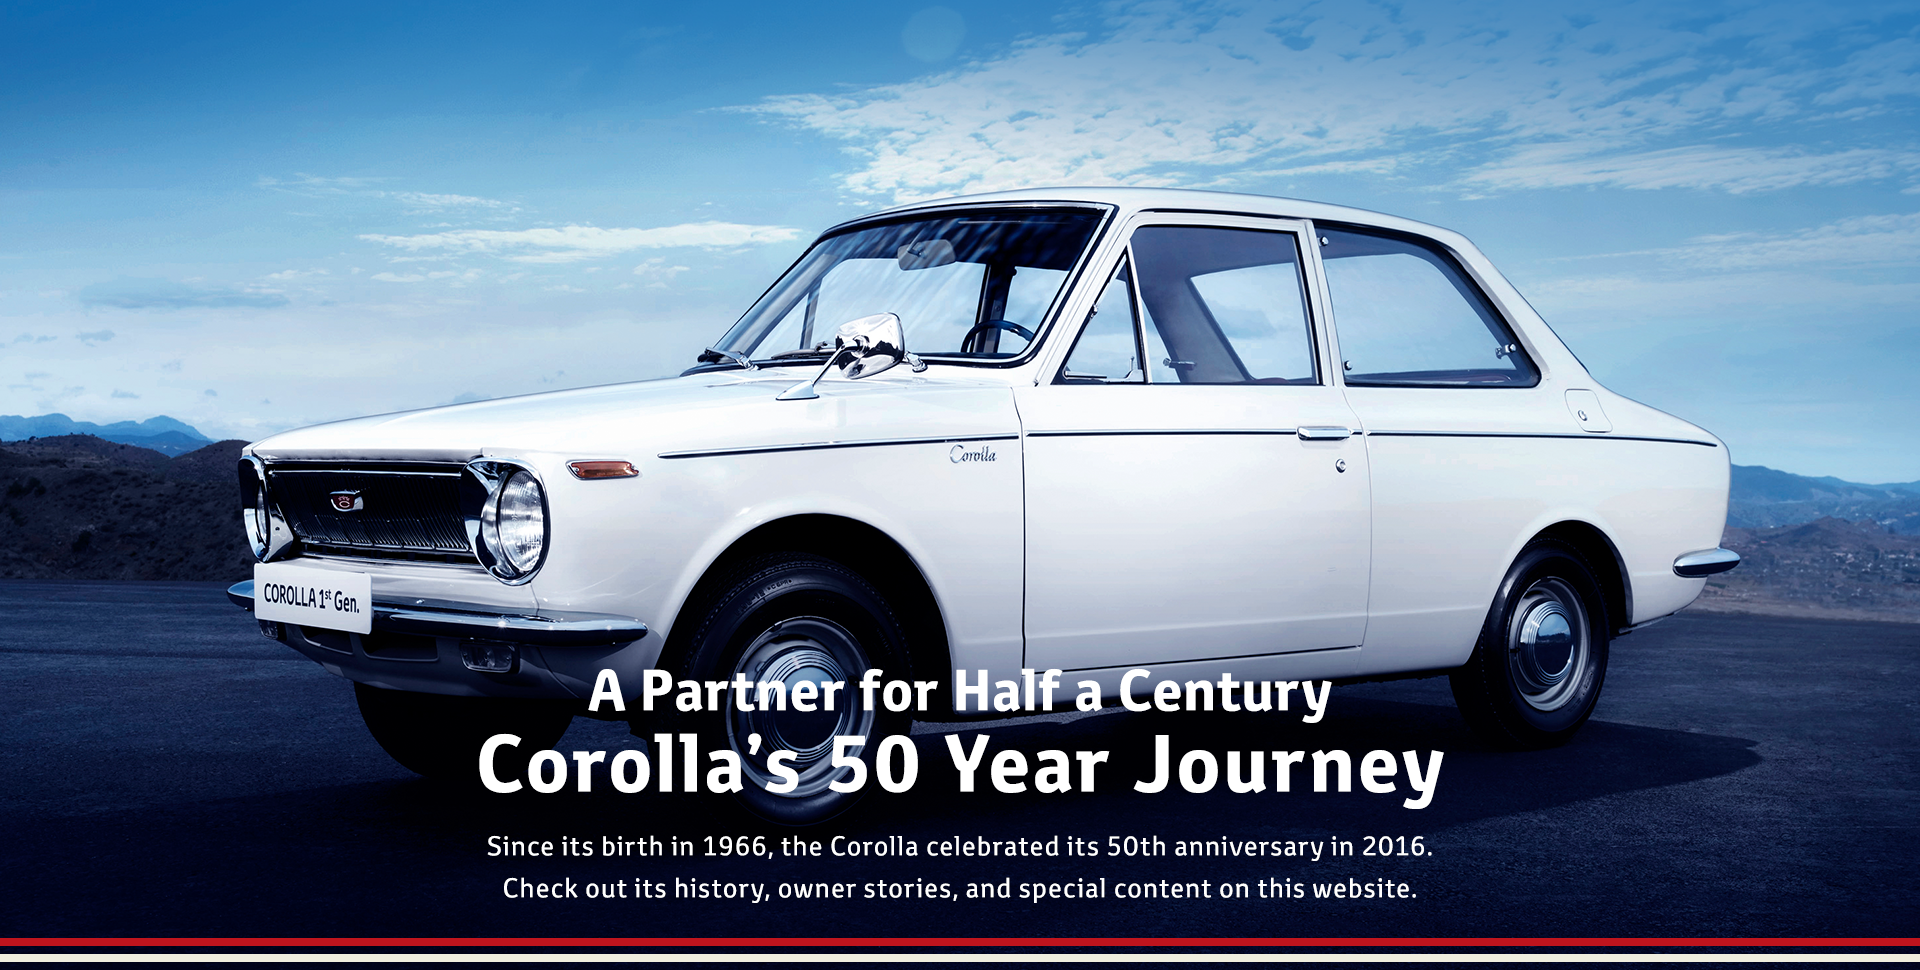 A Partner for Half a Century: Corolla's 50 Year Journey